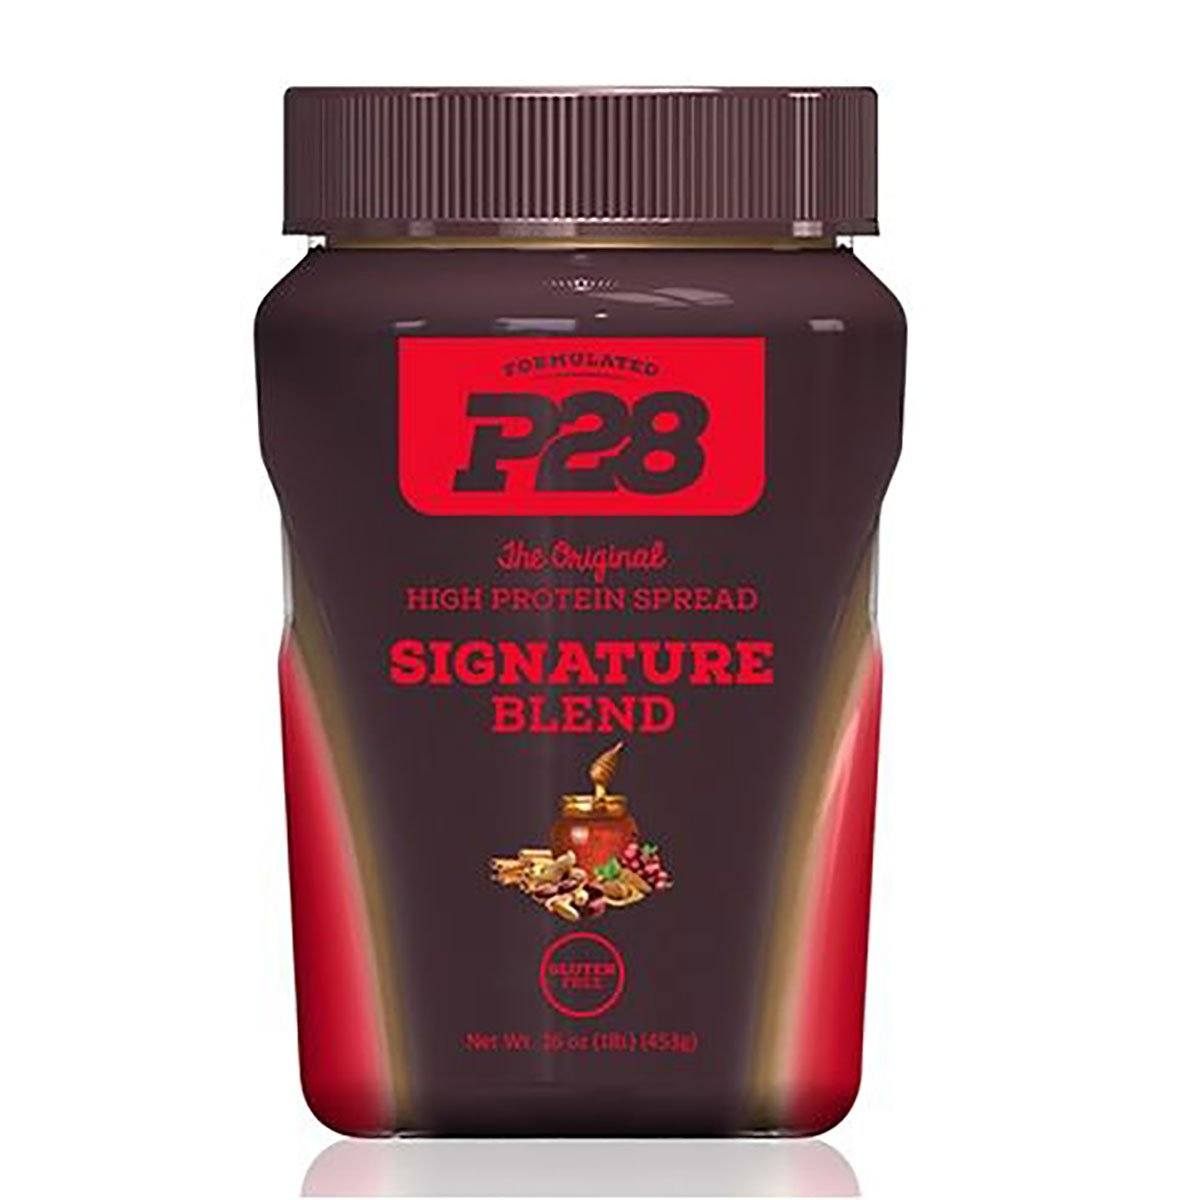 P28 High Protein Spread Signature Blend 16 Oz Protein P28  (1059011919915)